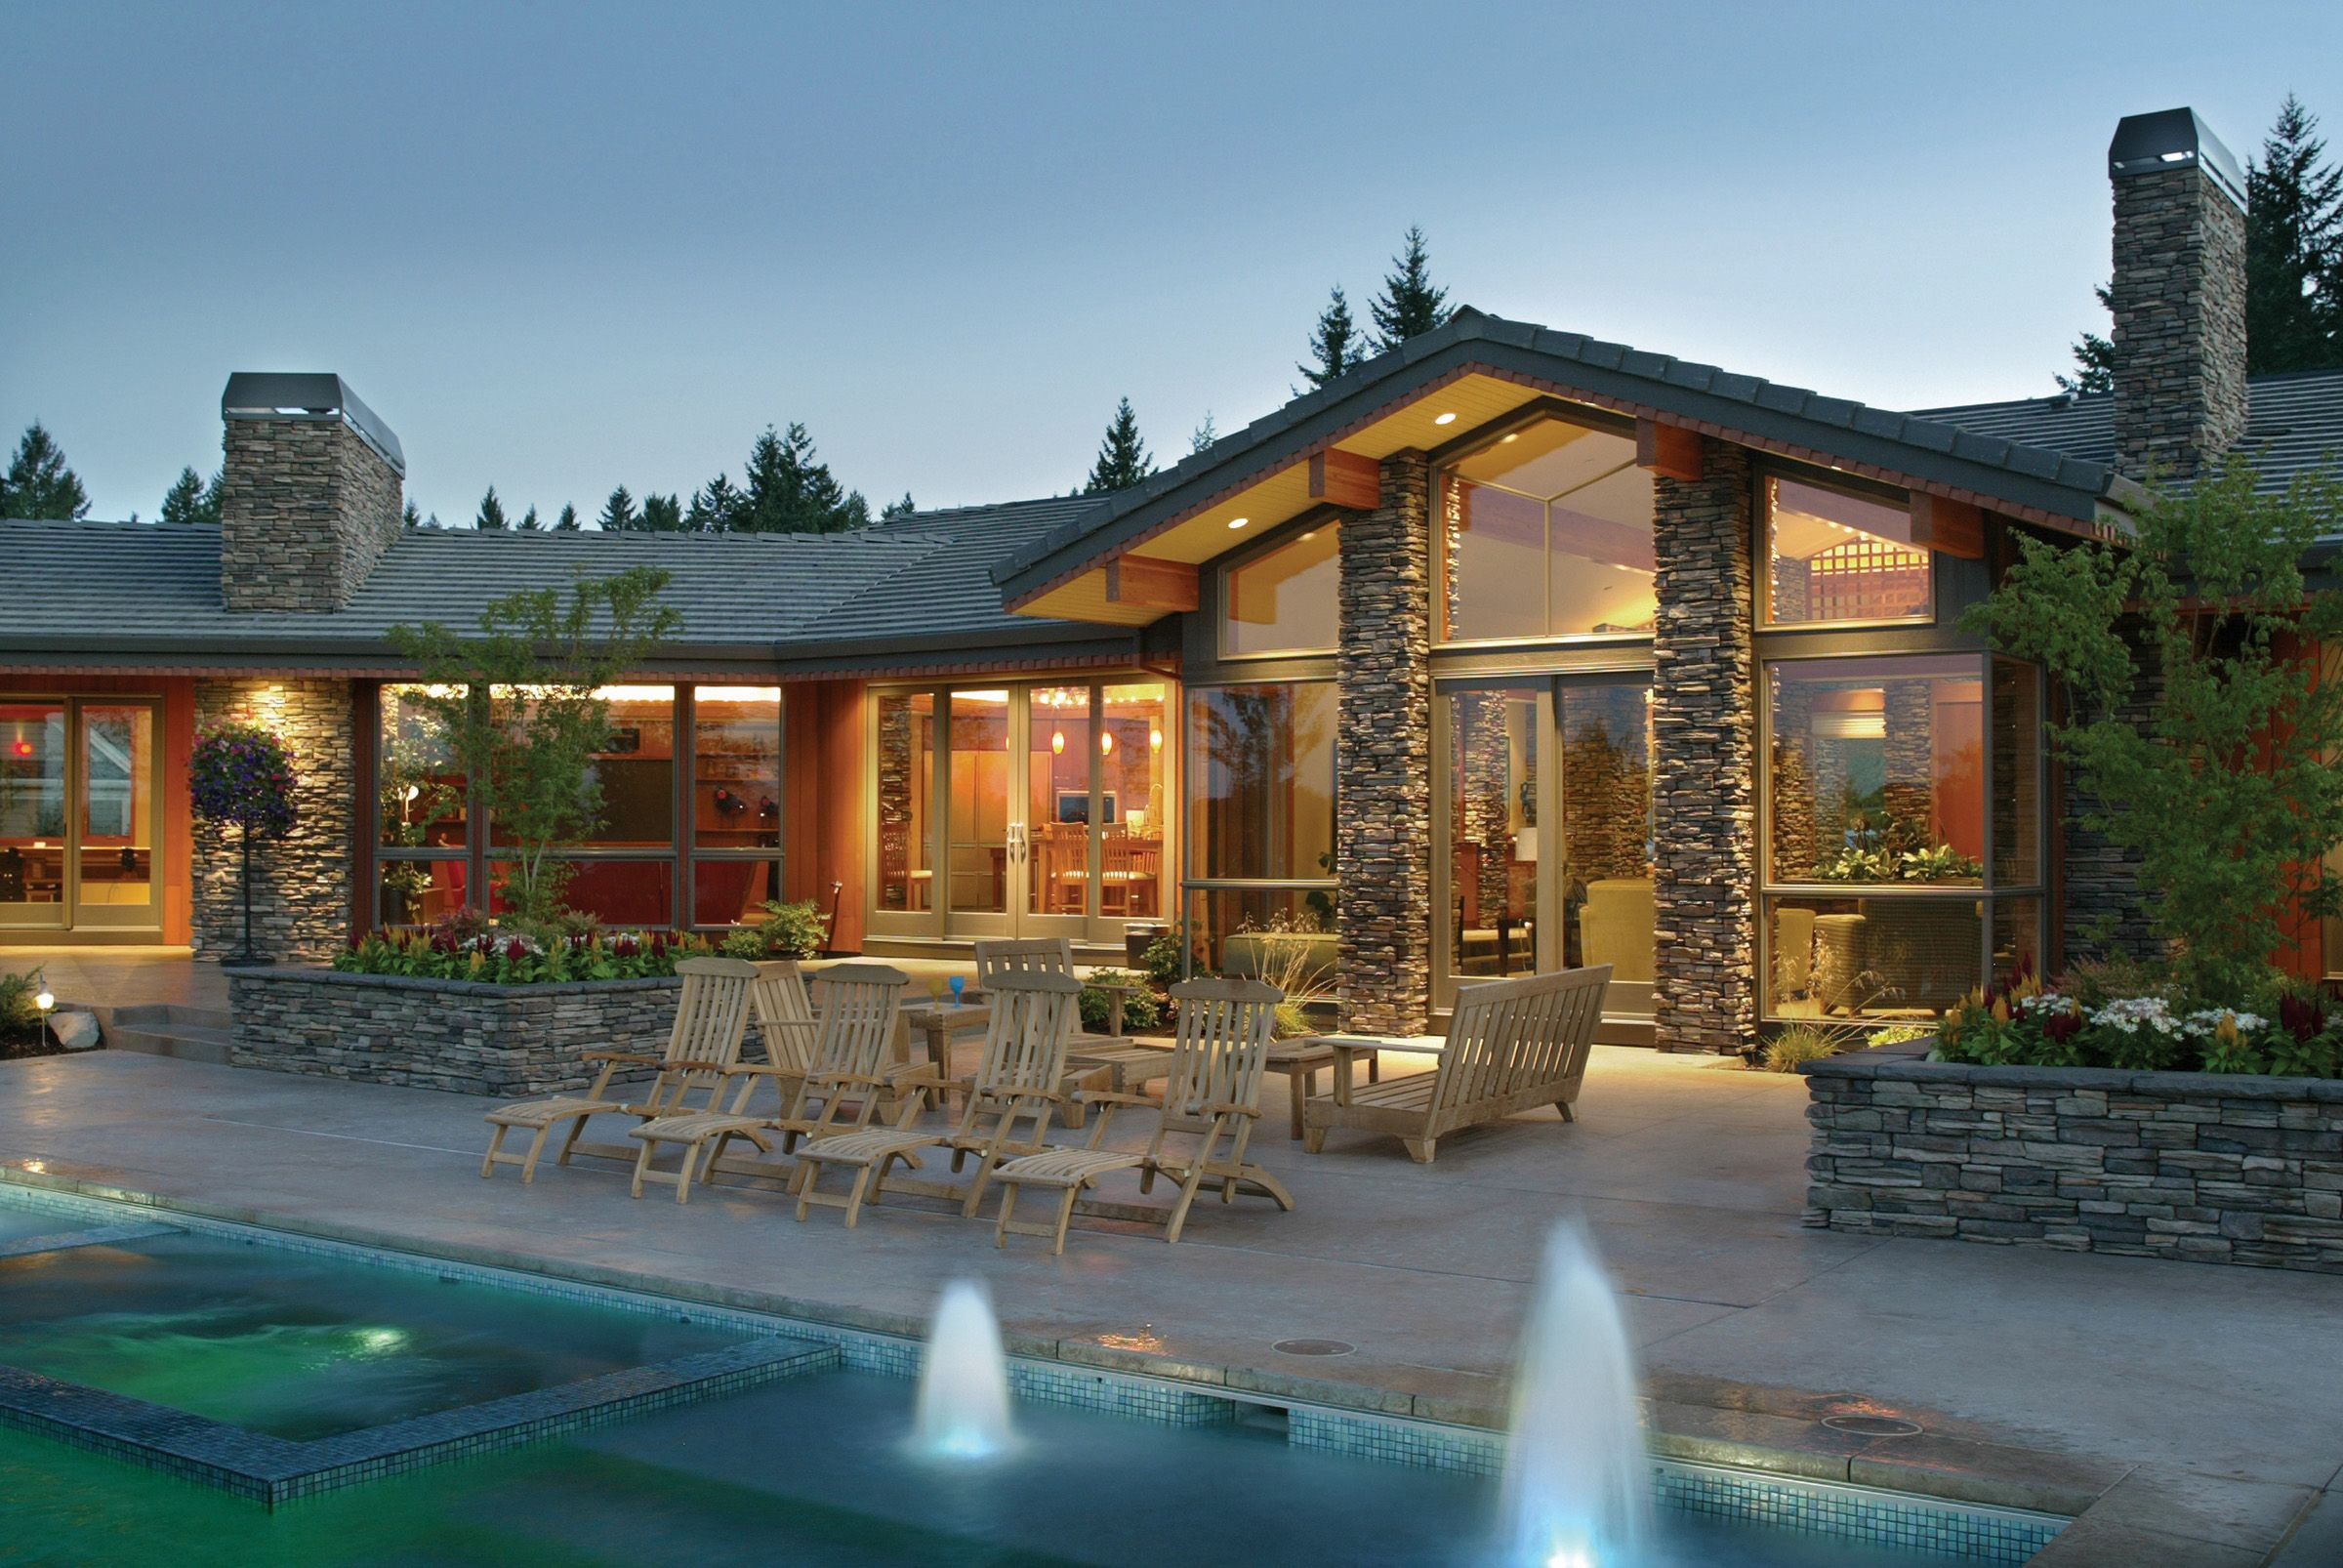 Pacific northwest home designs both homes were designed by amda design director eric schnell - Northwest home designs ...